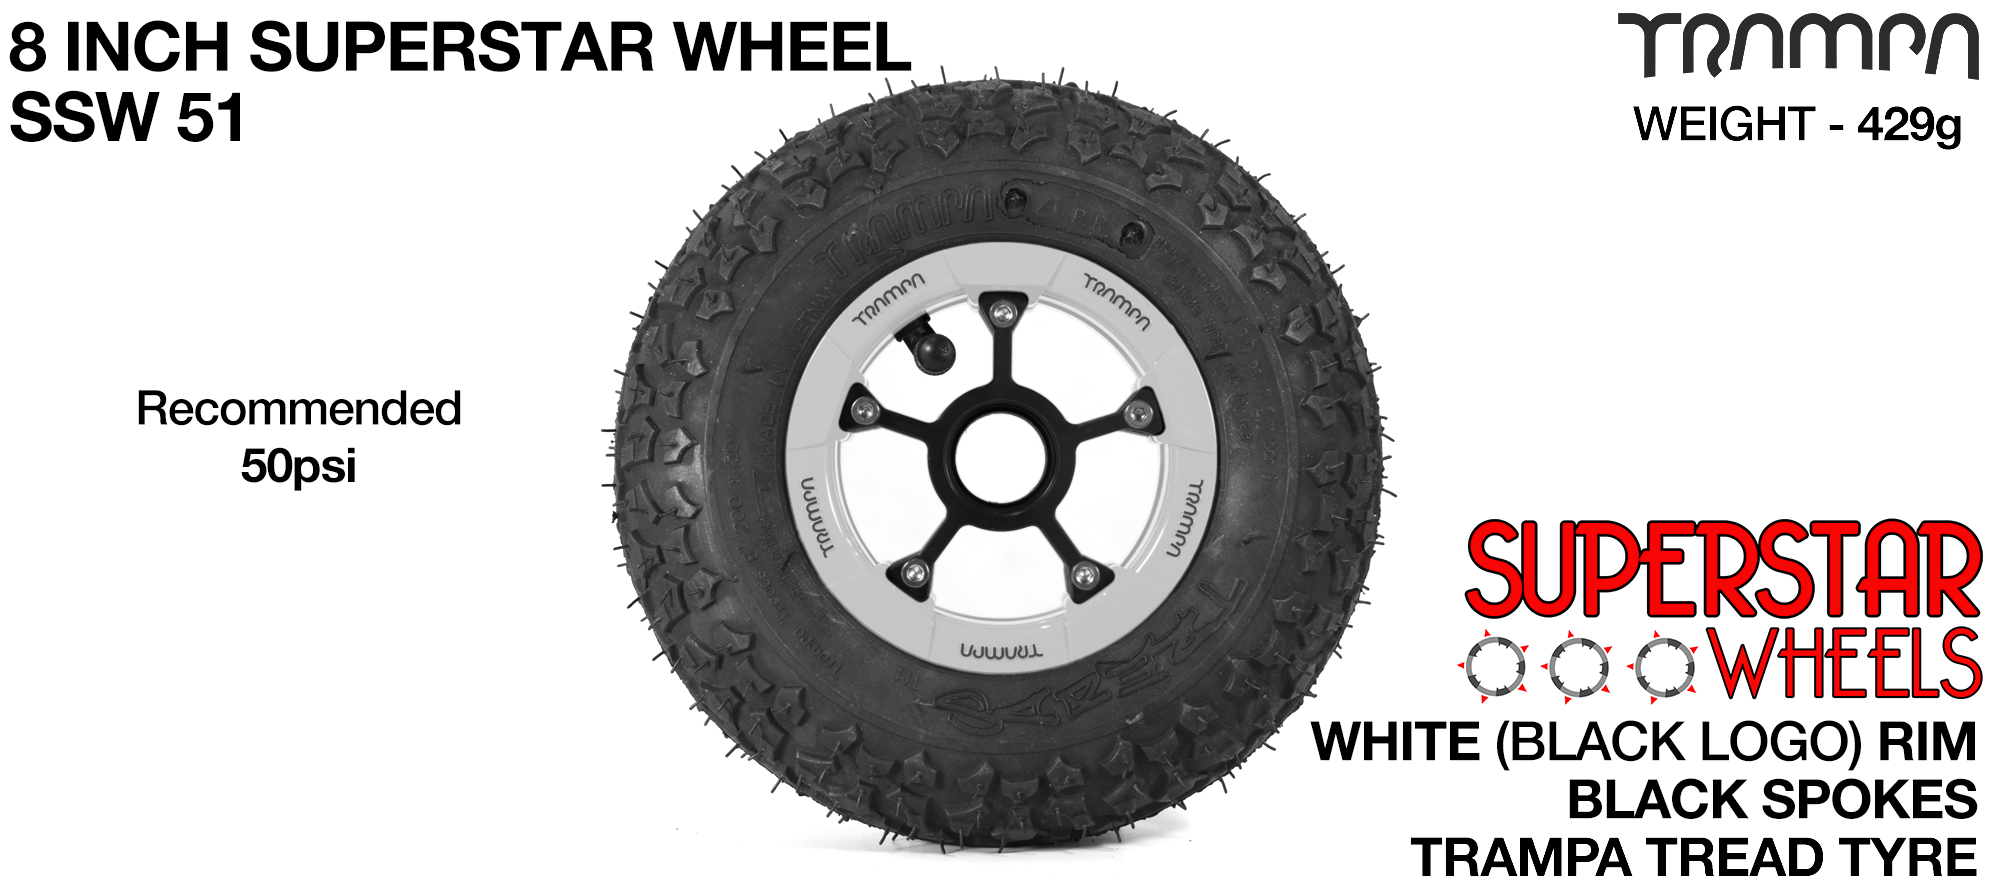 Superstar 8 inch wheel - White Gloss Rim with Black Anodised spokes & TRAMPA TREAD 8 Inch Tyres